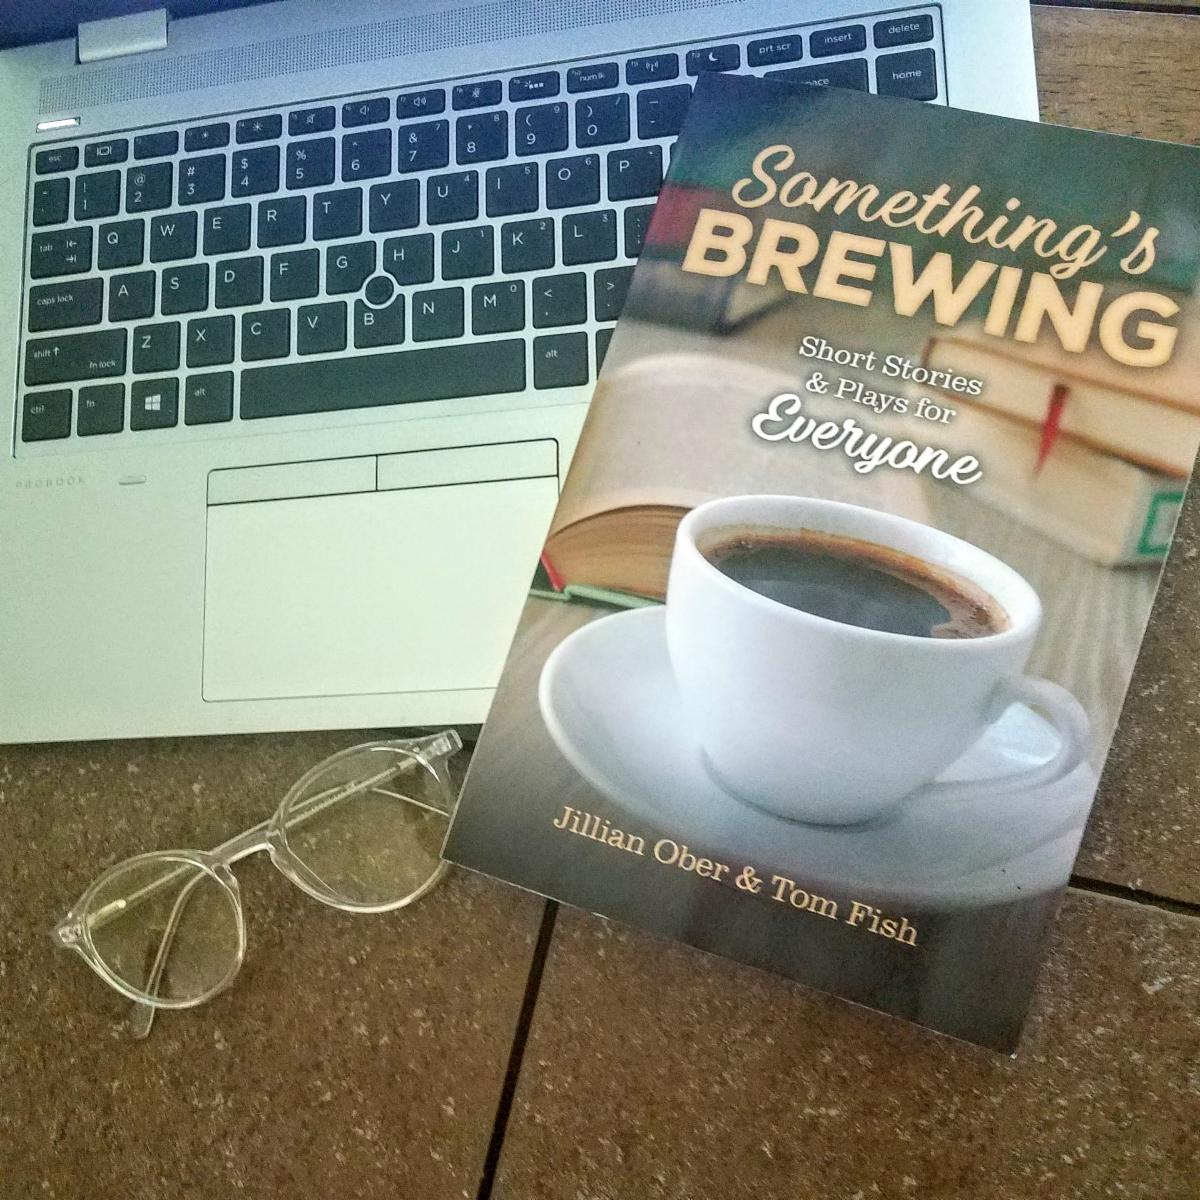 A book titled Something's Brewing: Stories and Plays for Everyone by Jillian Ober & Tom Fish sits atop a laptop keyboard.  A pair of glasses is next to the book.